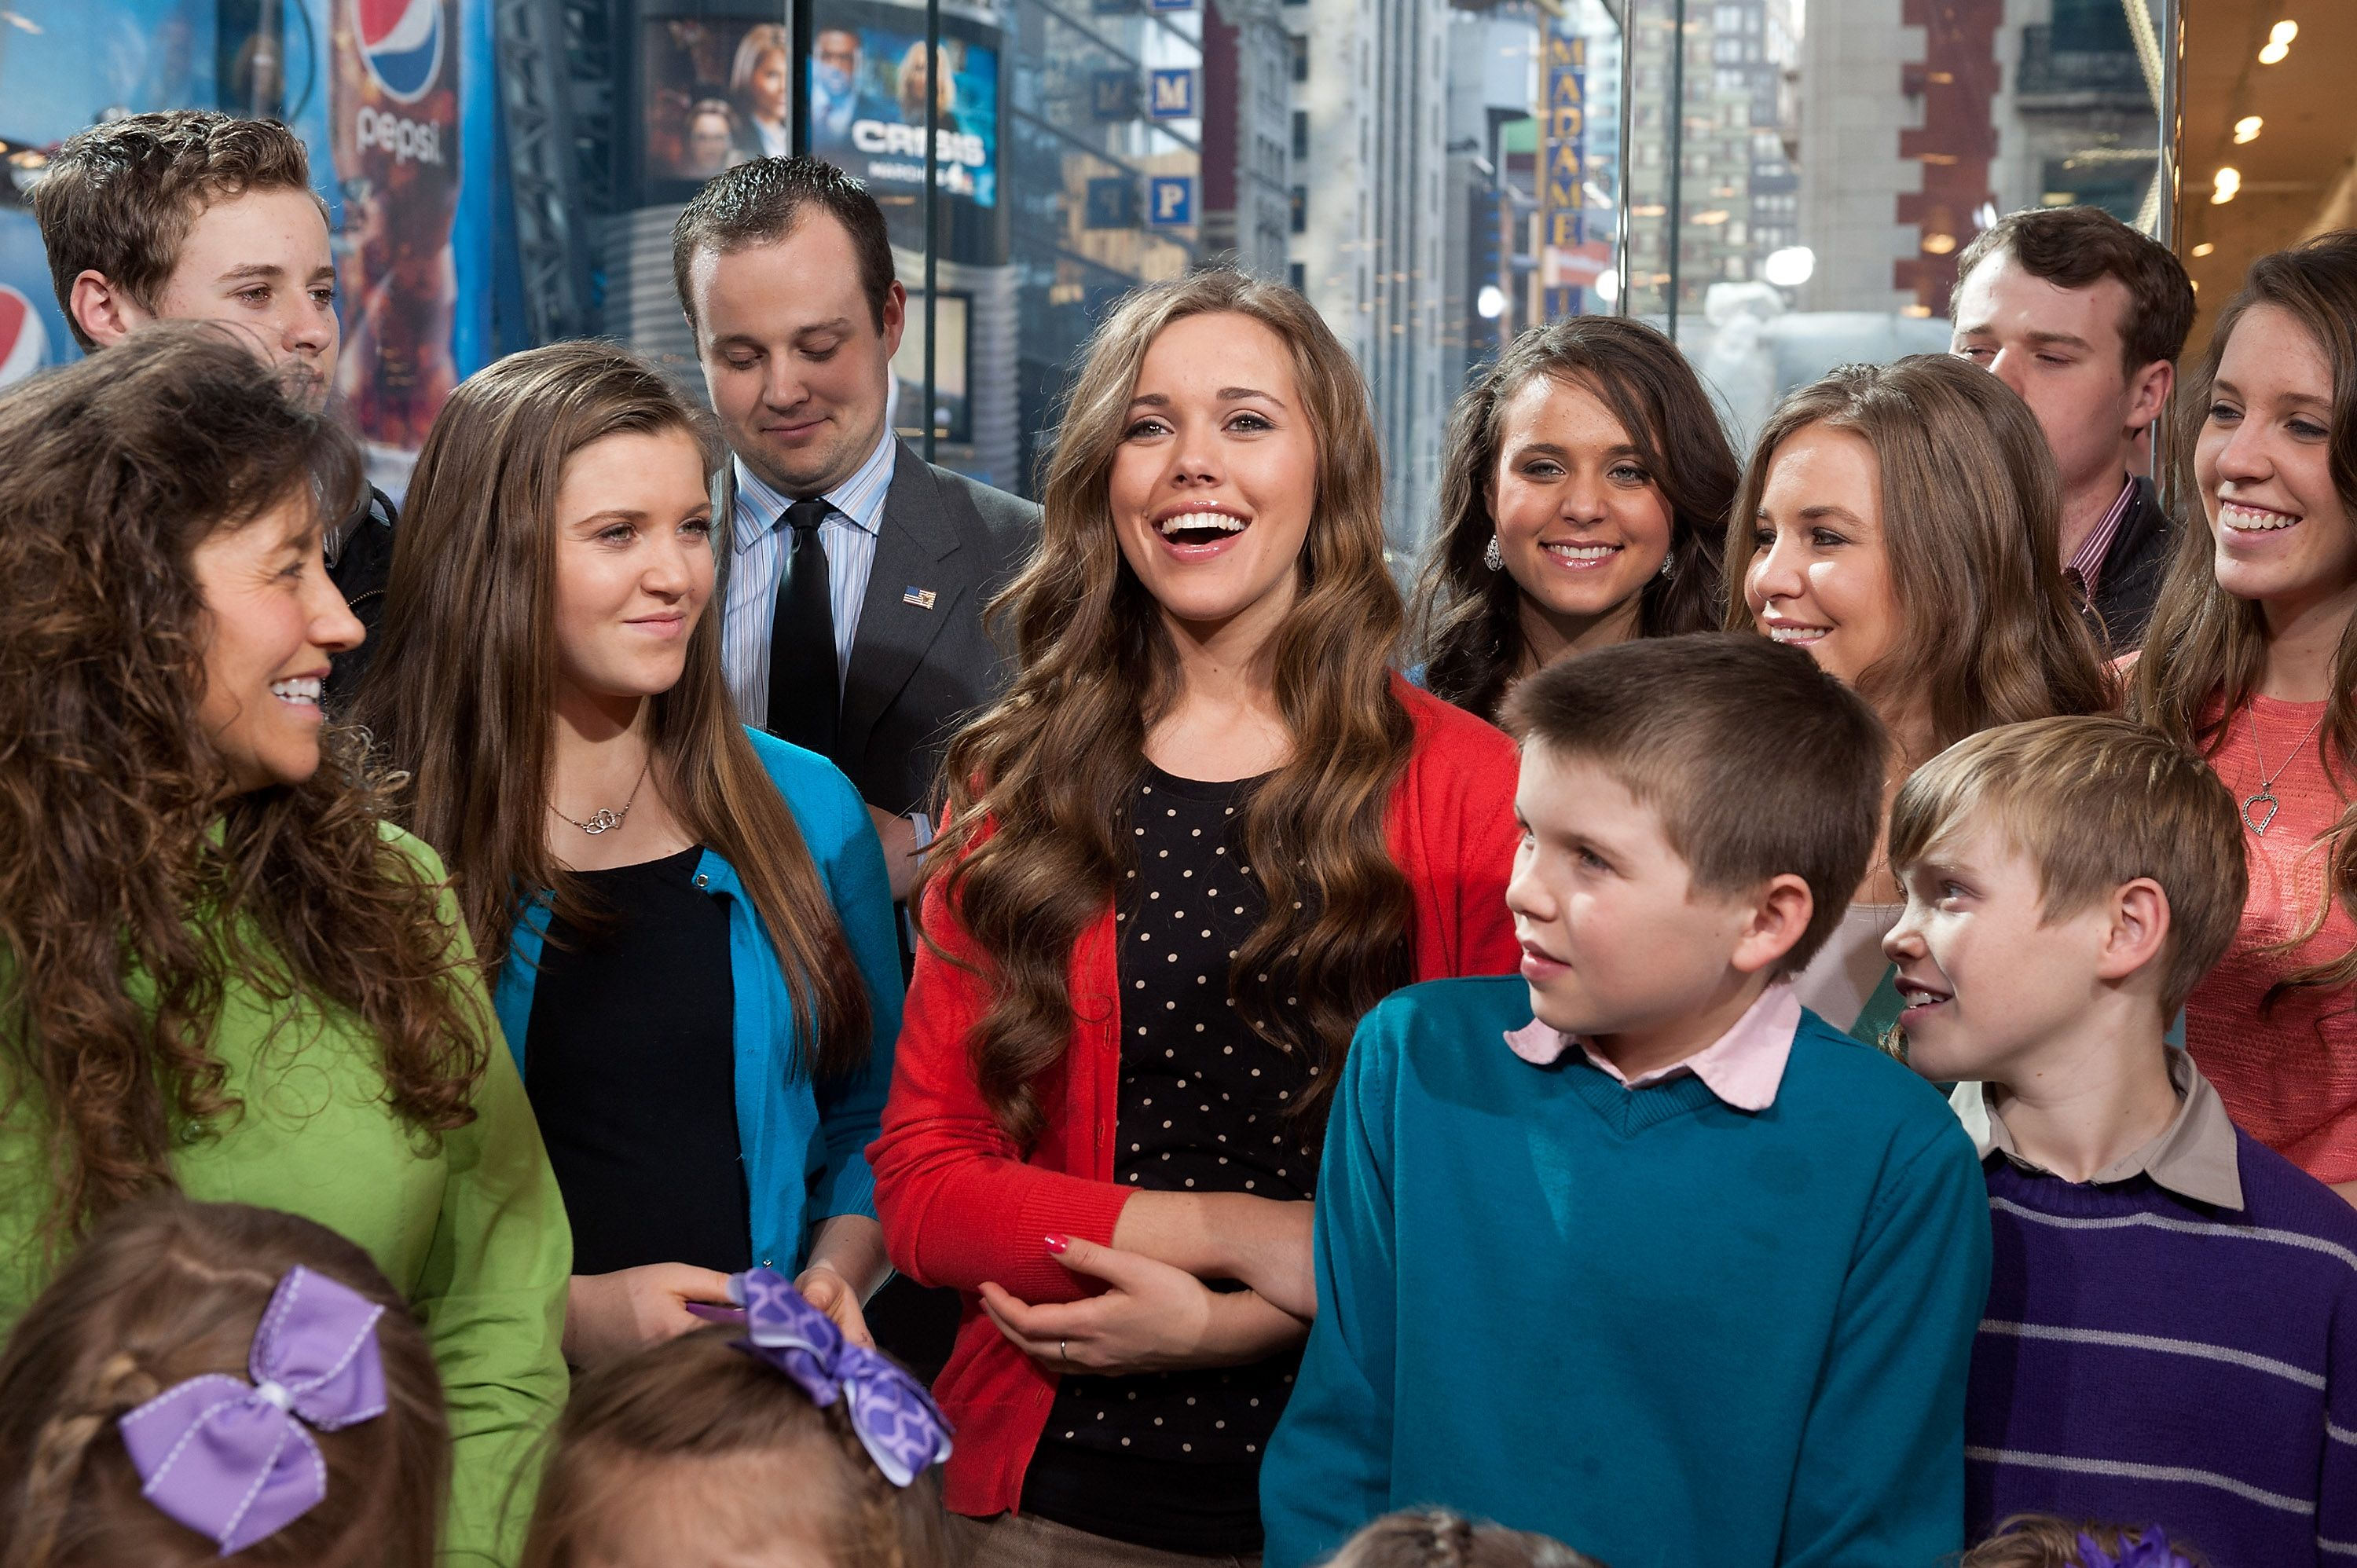 Jessa Duggar and the rest of the Duggar siblings